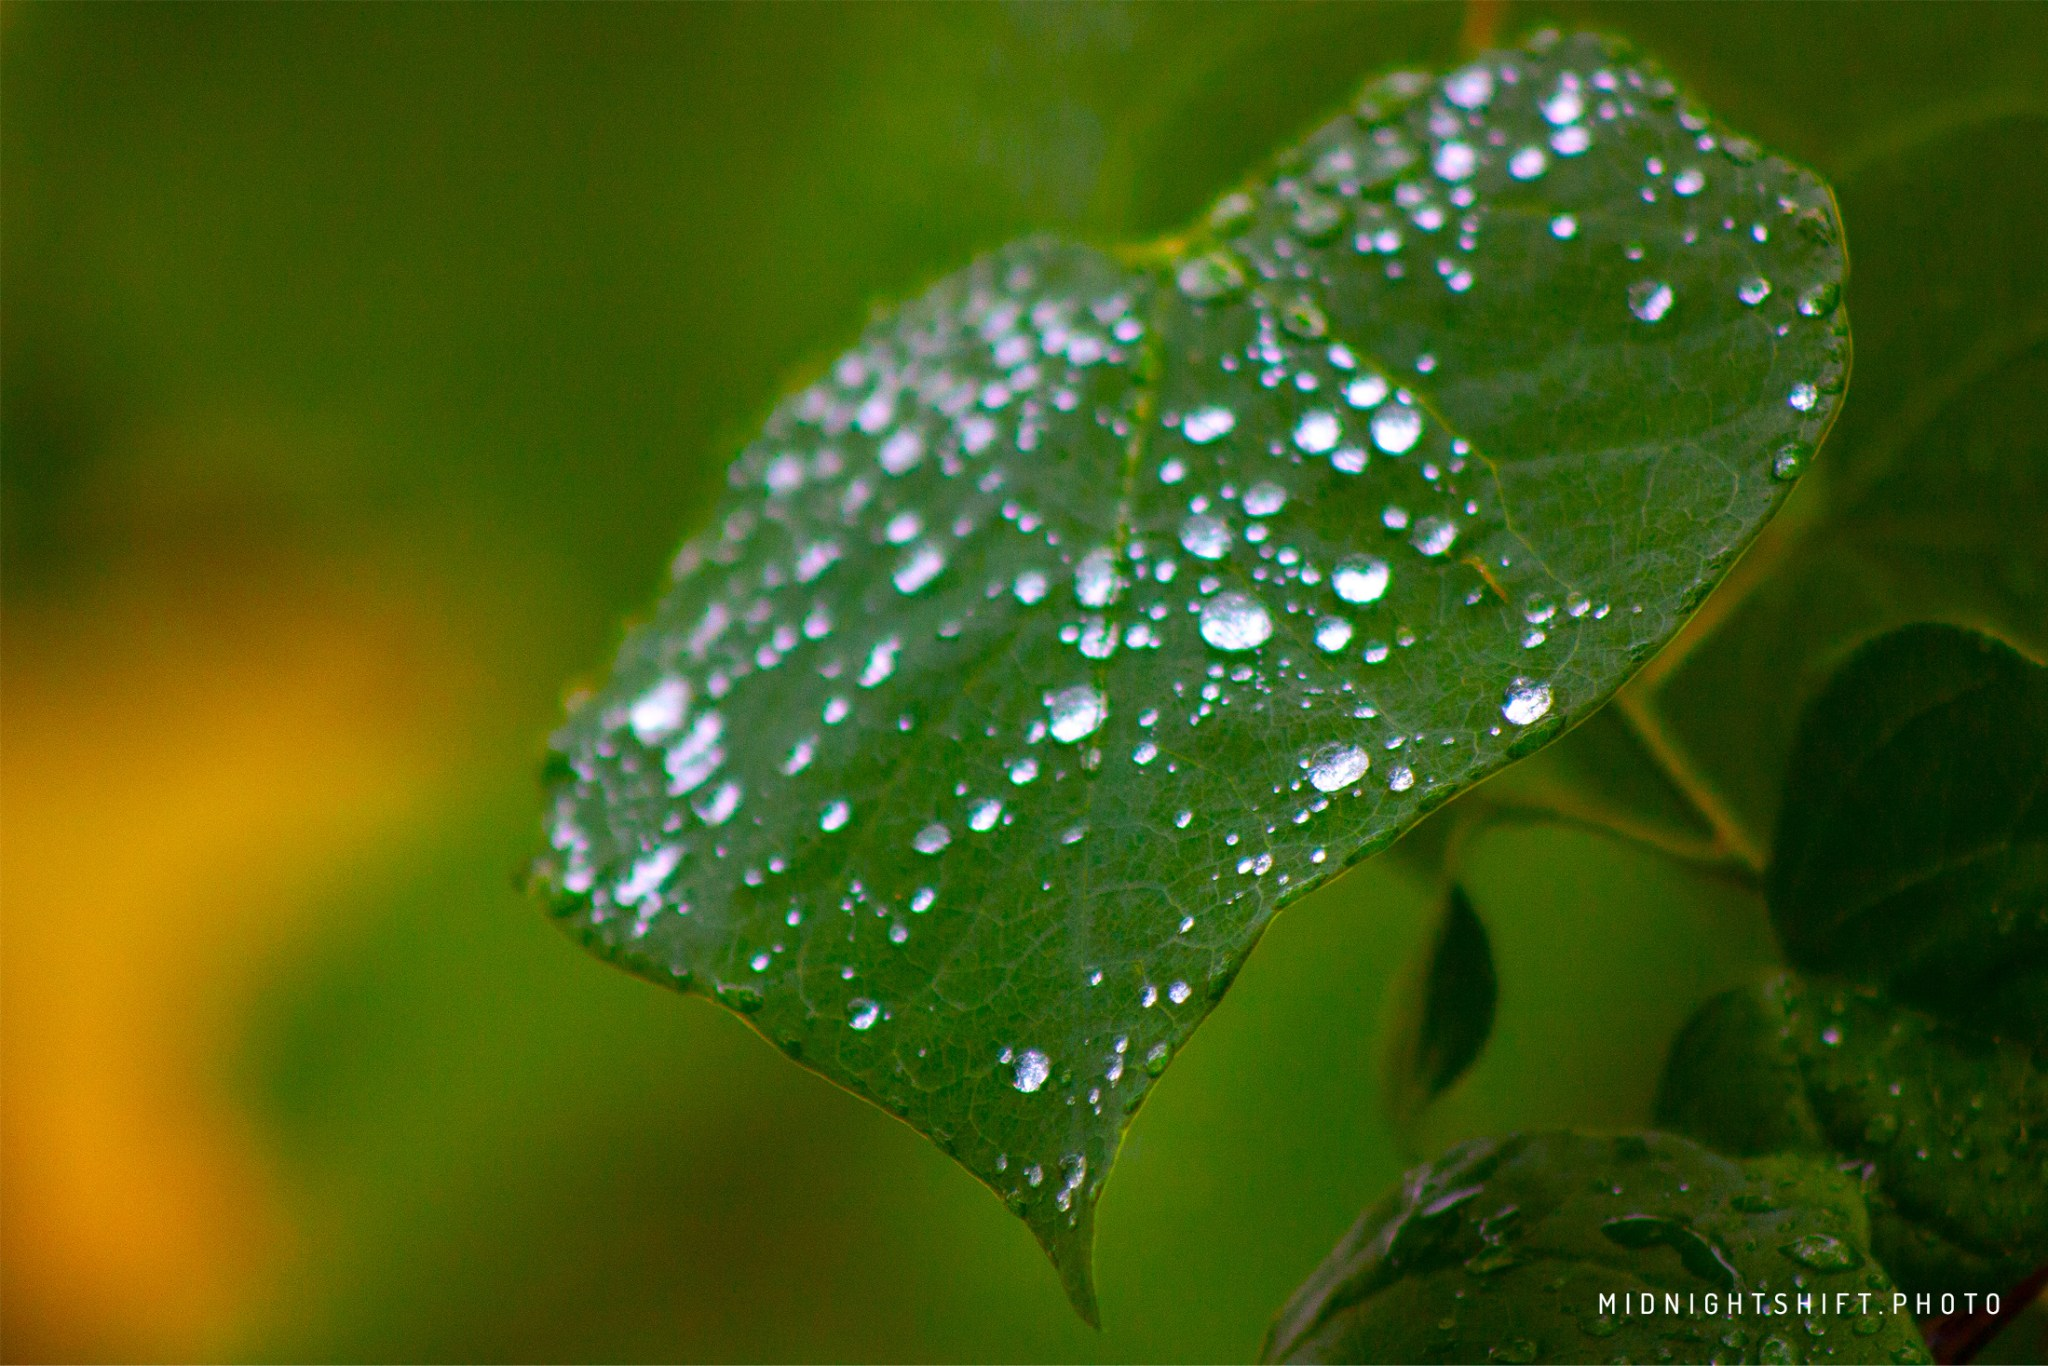 Rain droplets collect on a leaf